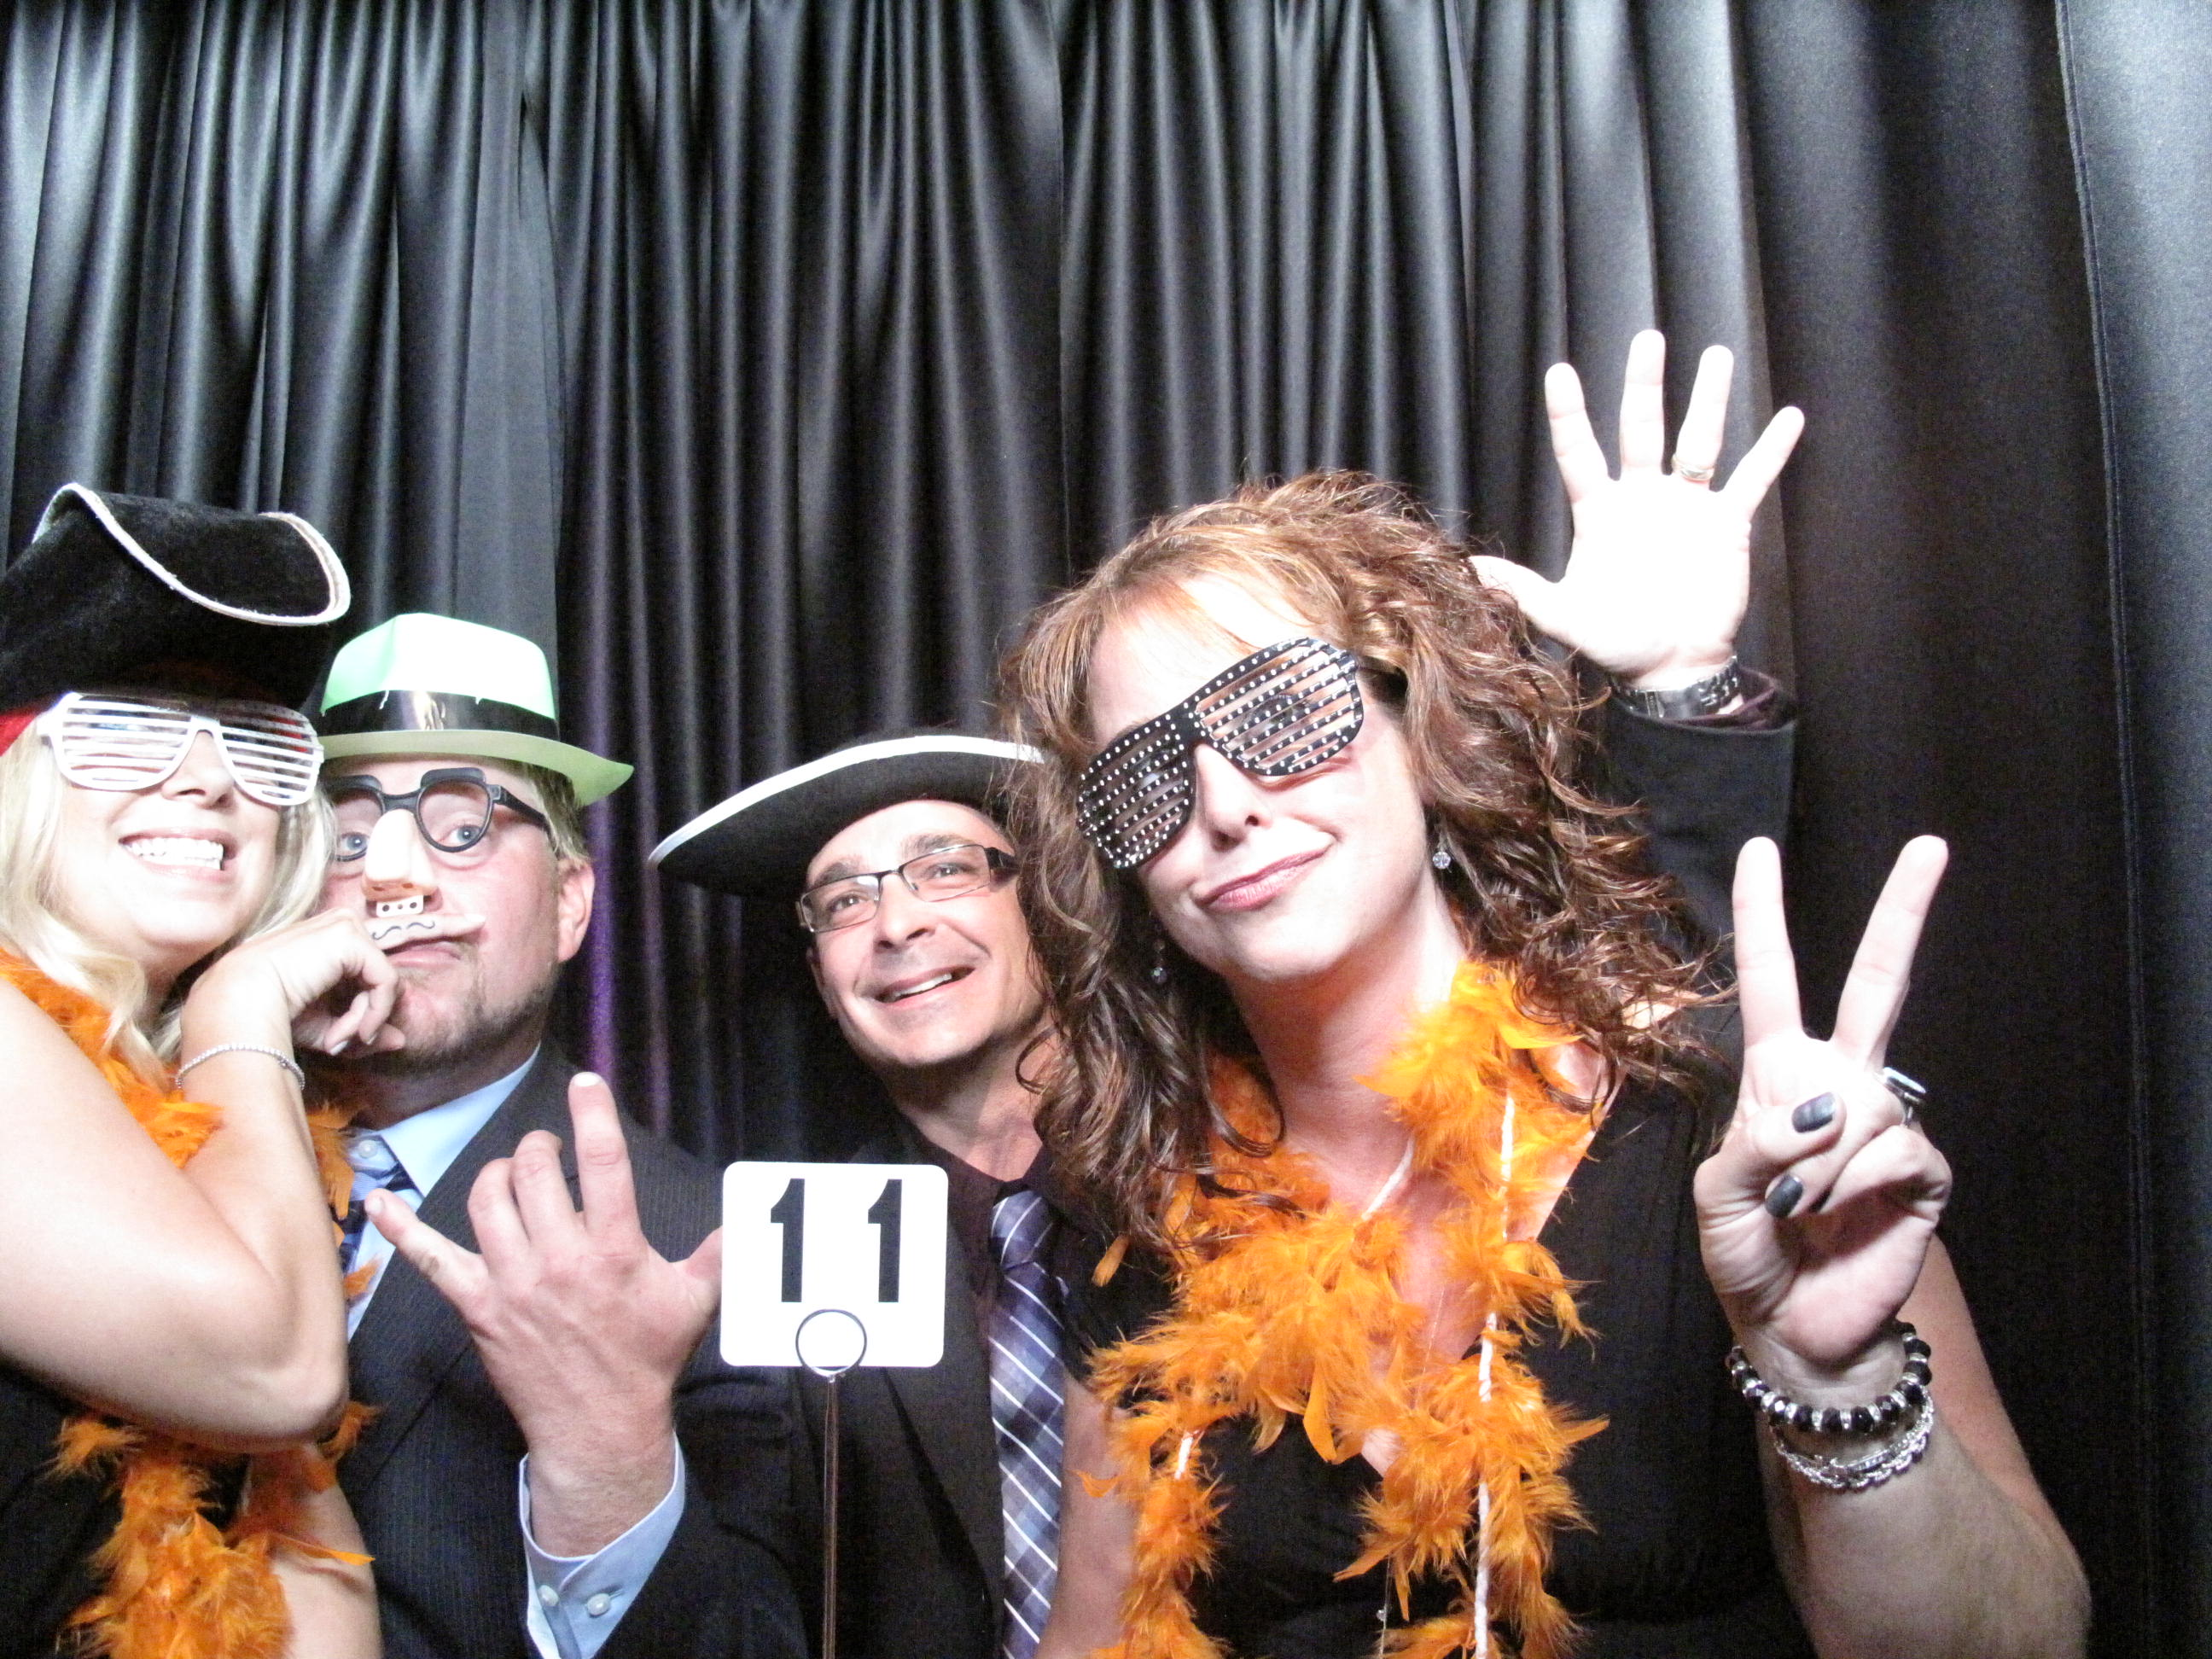 Snapshot Photobooths at the Hilton Hotel in East Brunswick